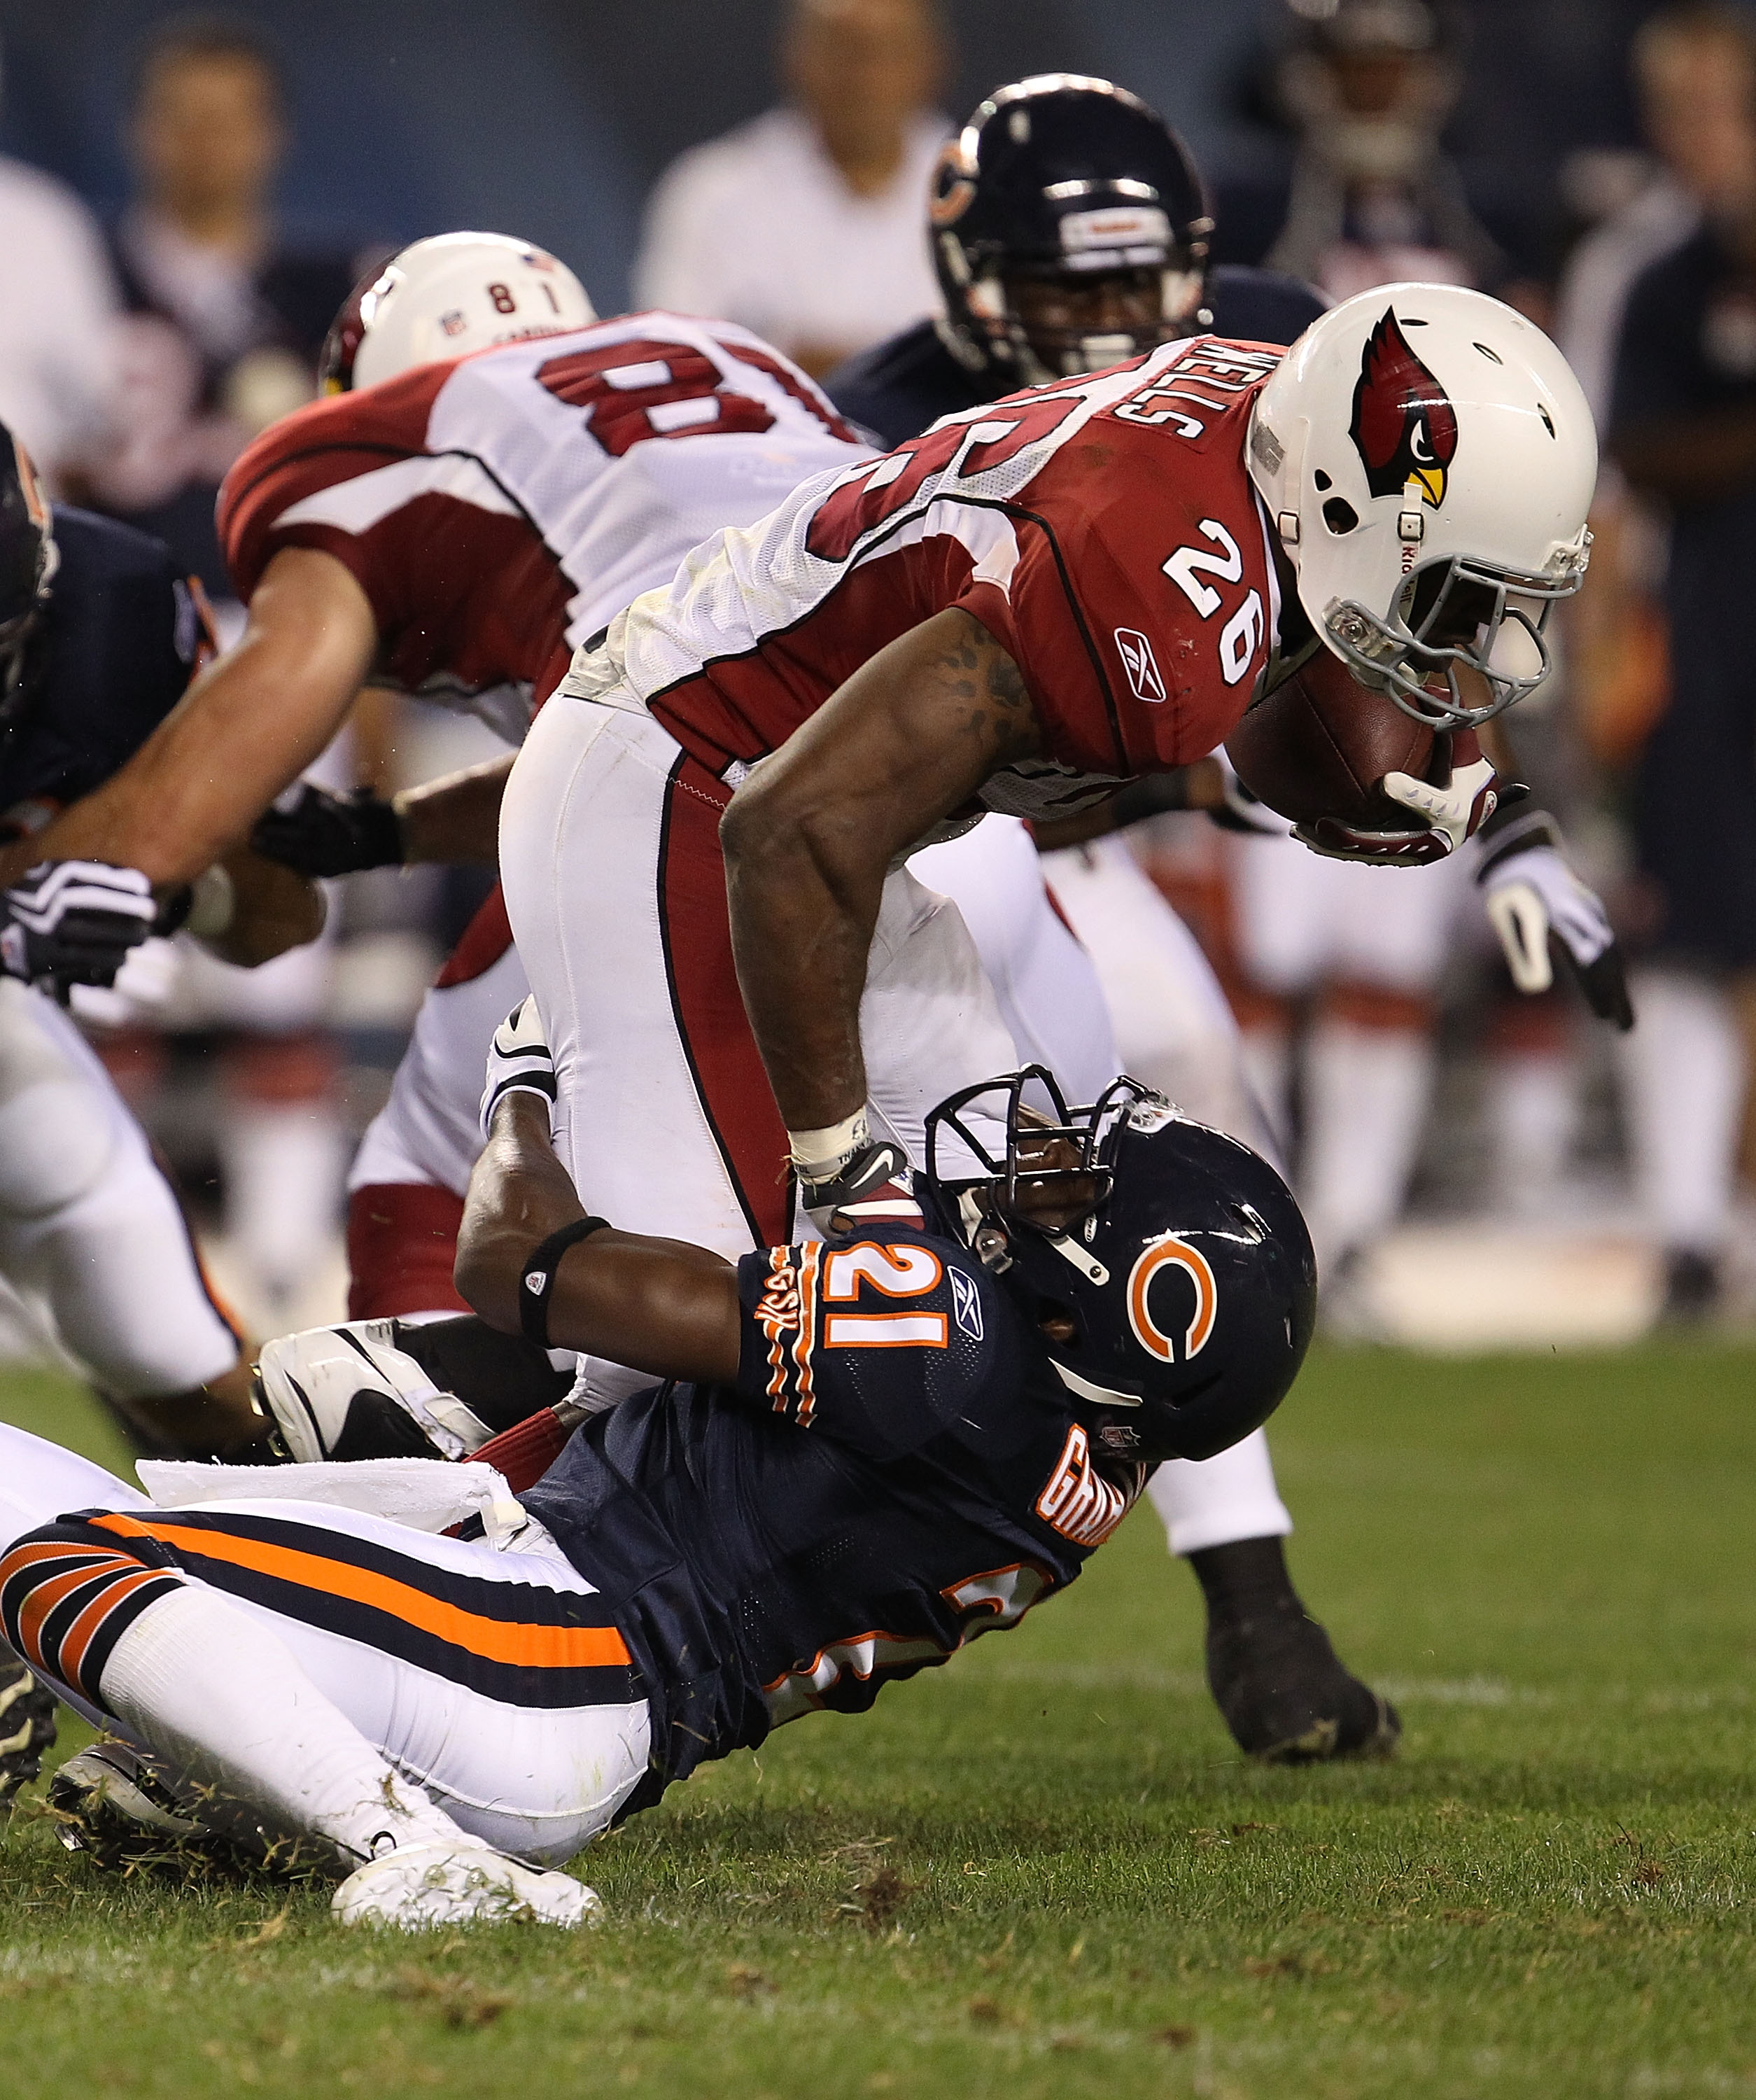 CHICAGO - AUGUST 28: Corey Graham #21 of the Chicago Bears drops Beanie Wells #26 of the Arizona Cardinals during a preseason game at Soldier Field on August 28, 2010 in Chicago, Illinois. The Cardinals defeated the Bears 14-9. (Photo by Jonathan Daniel/G